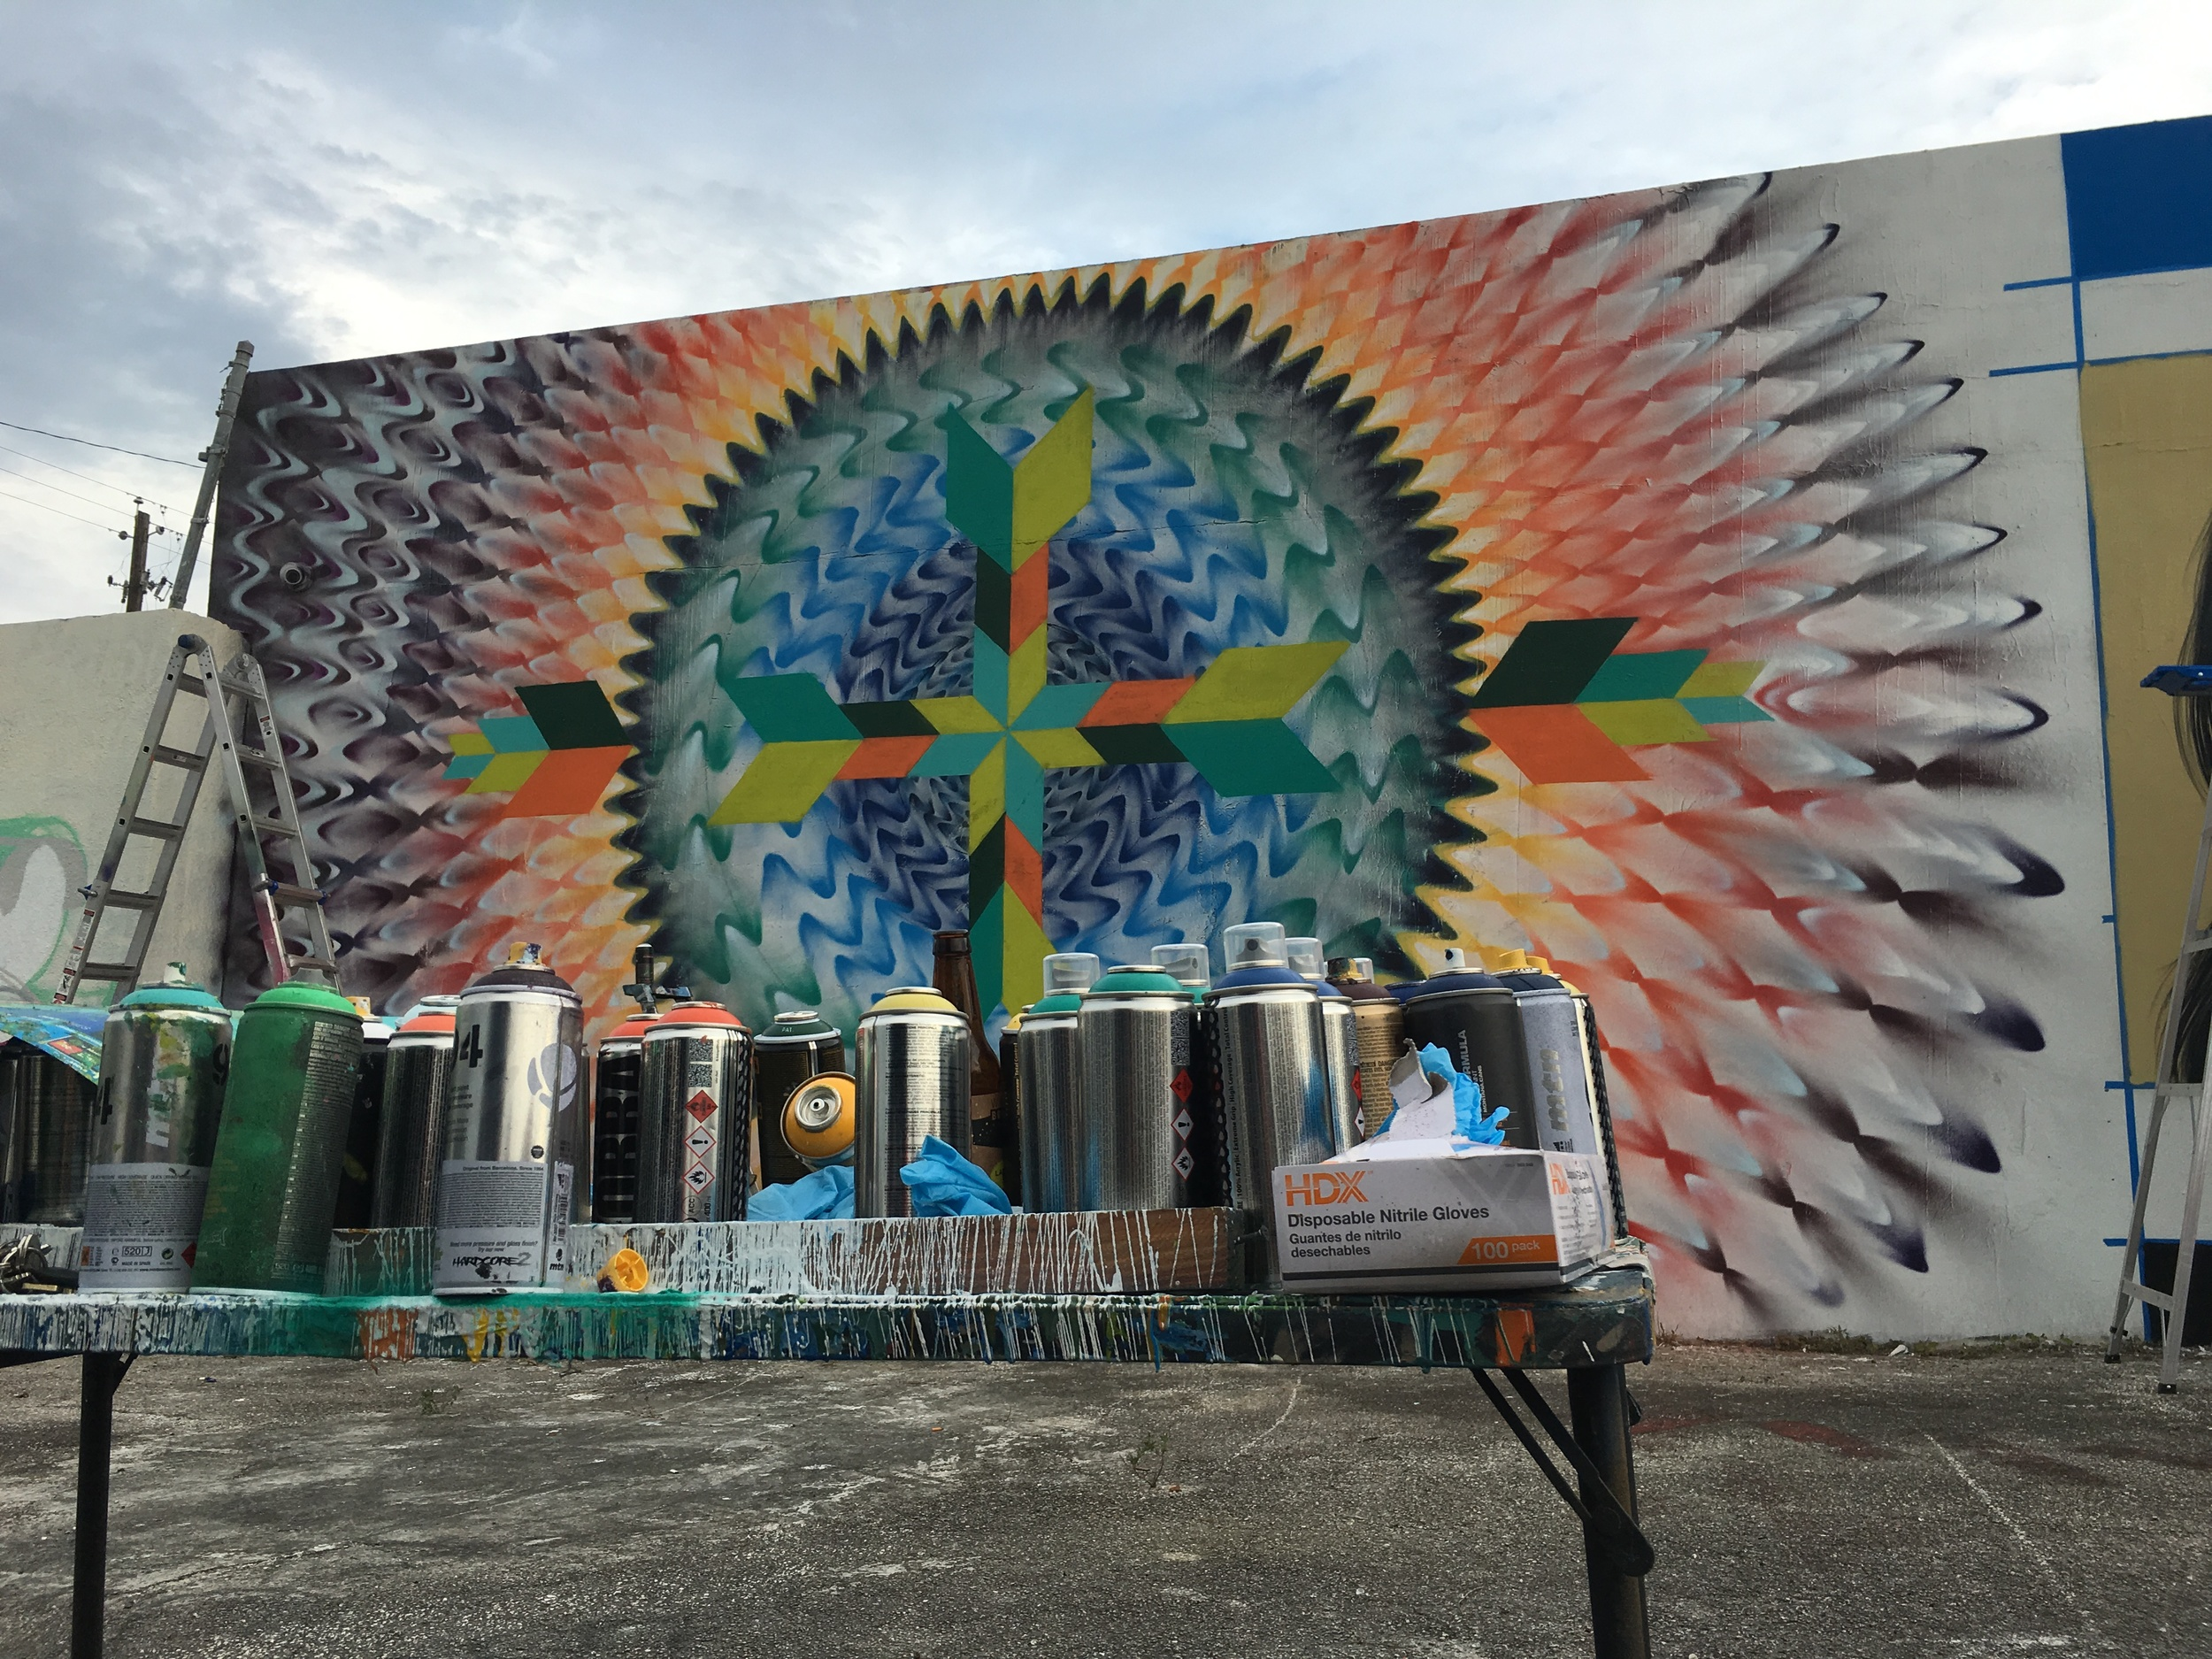 WYNWOOD WALLS HOXXOH COLLABORATION, MIAMI - 2016